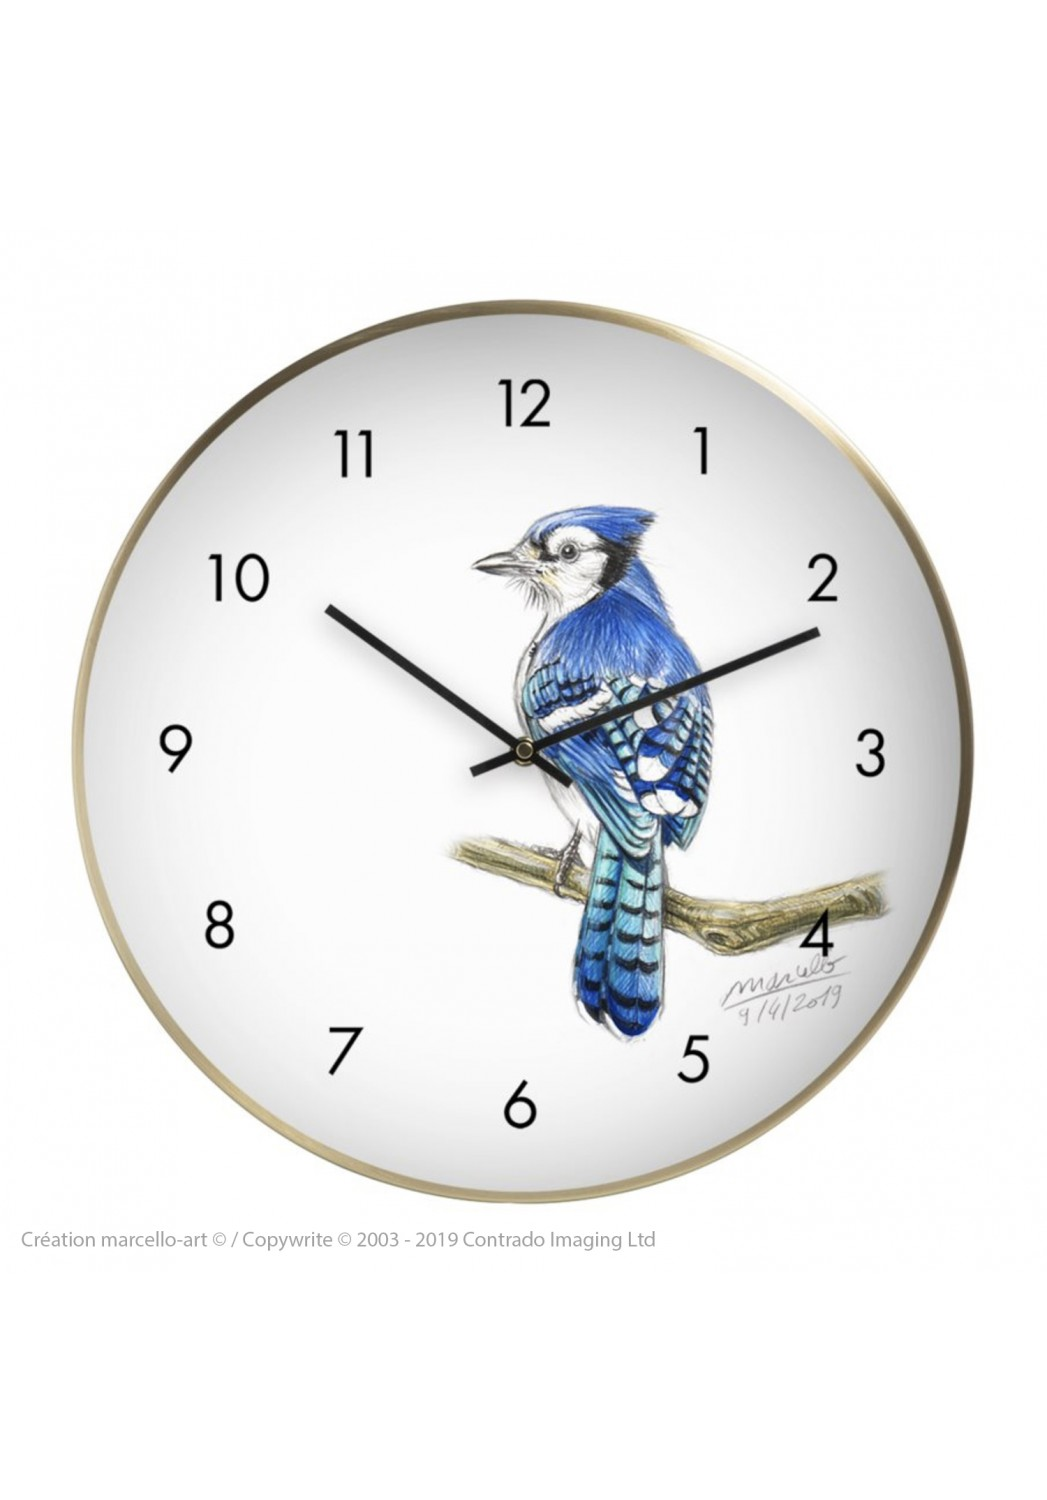 Marcello-art: Decoration accessoiries Wall clock 393 Blue jay